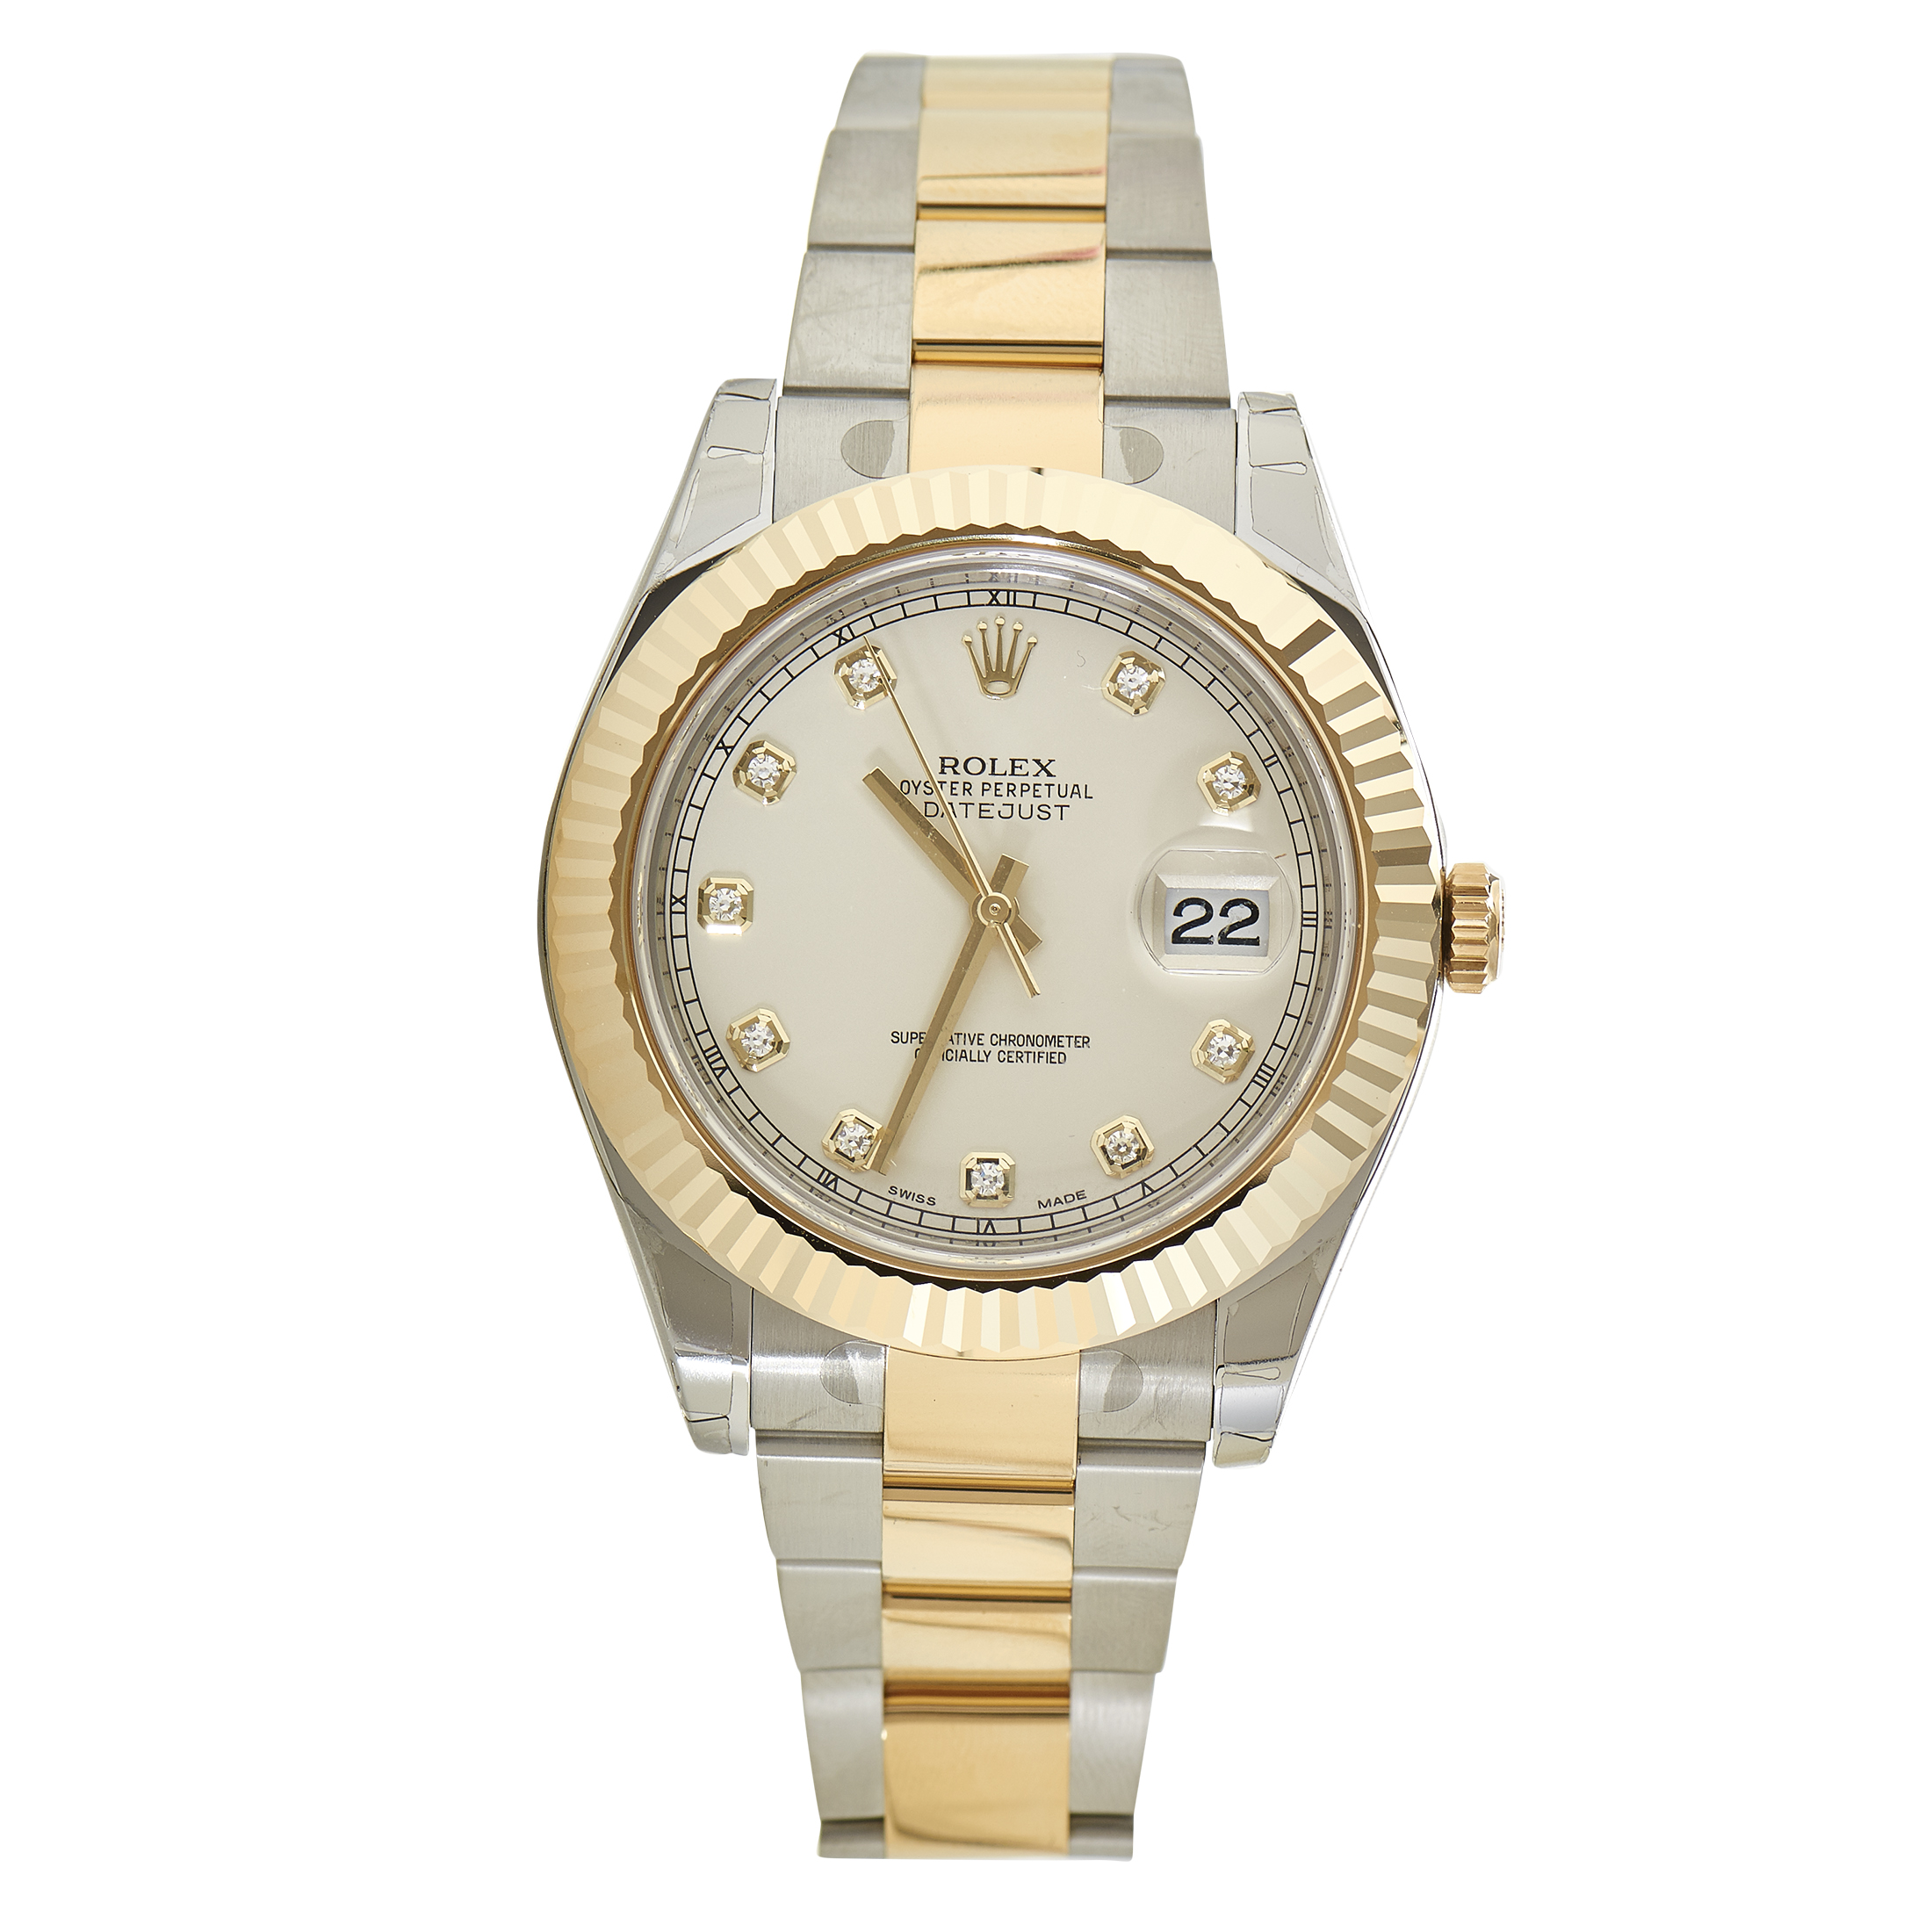 Oyster Perpetual Datejust II Men's Automatic Watch 116333 ido